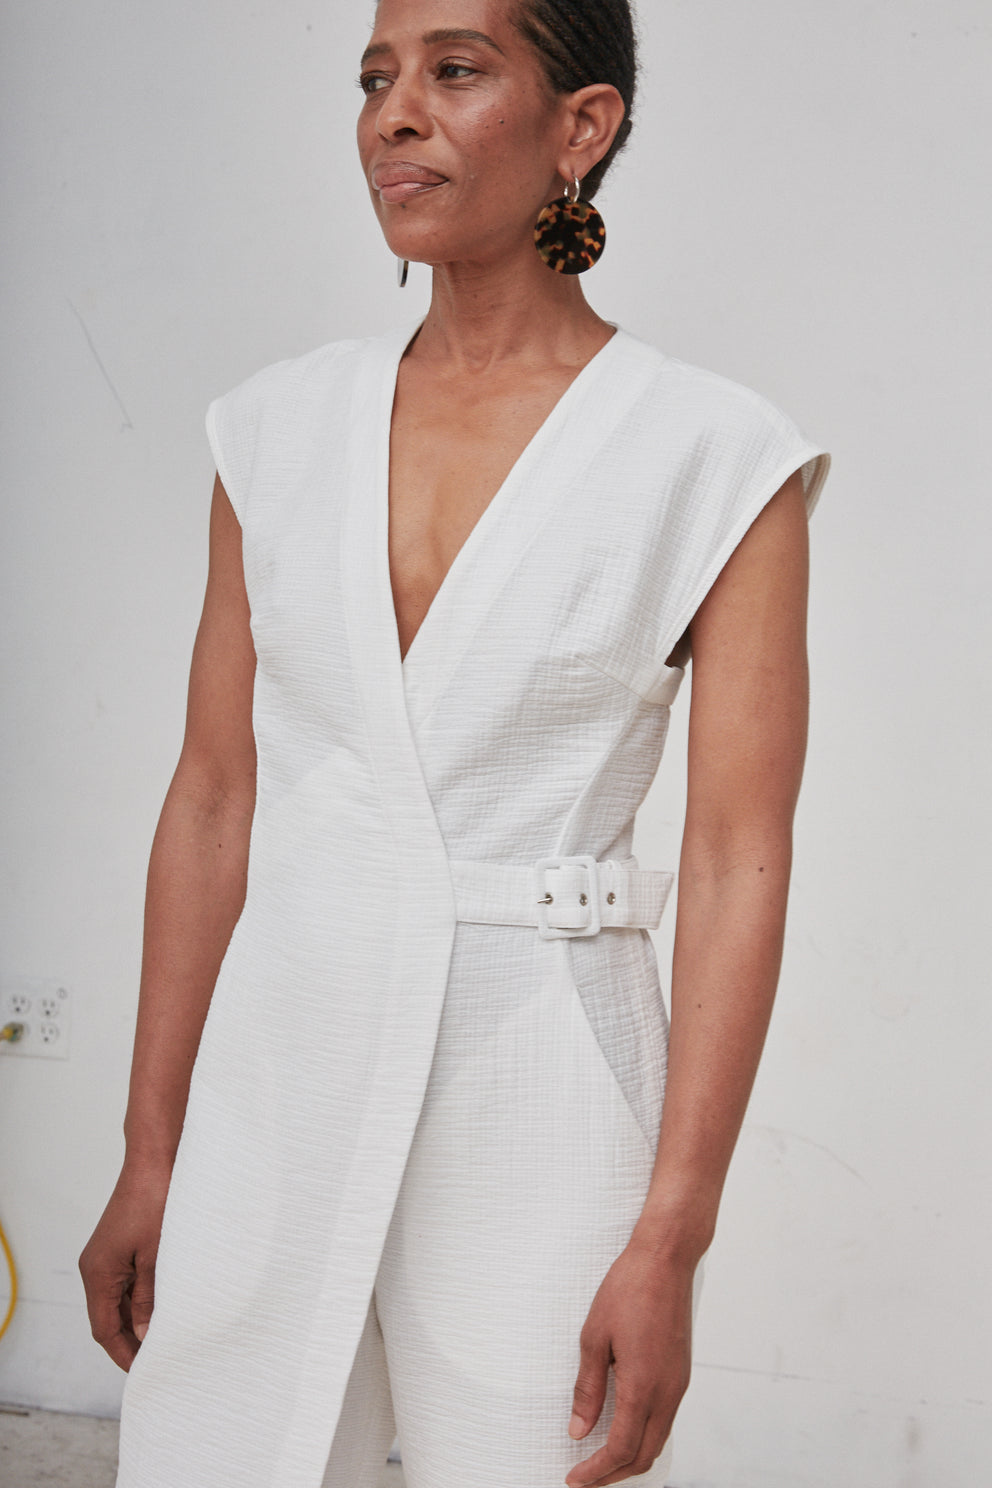 Giannie Couji wears Rachel Comey's Steadfast jumpsuit in white